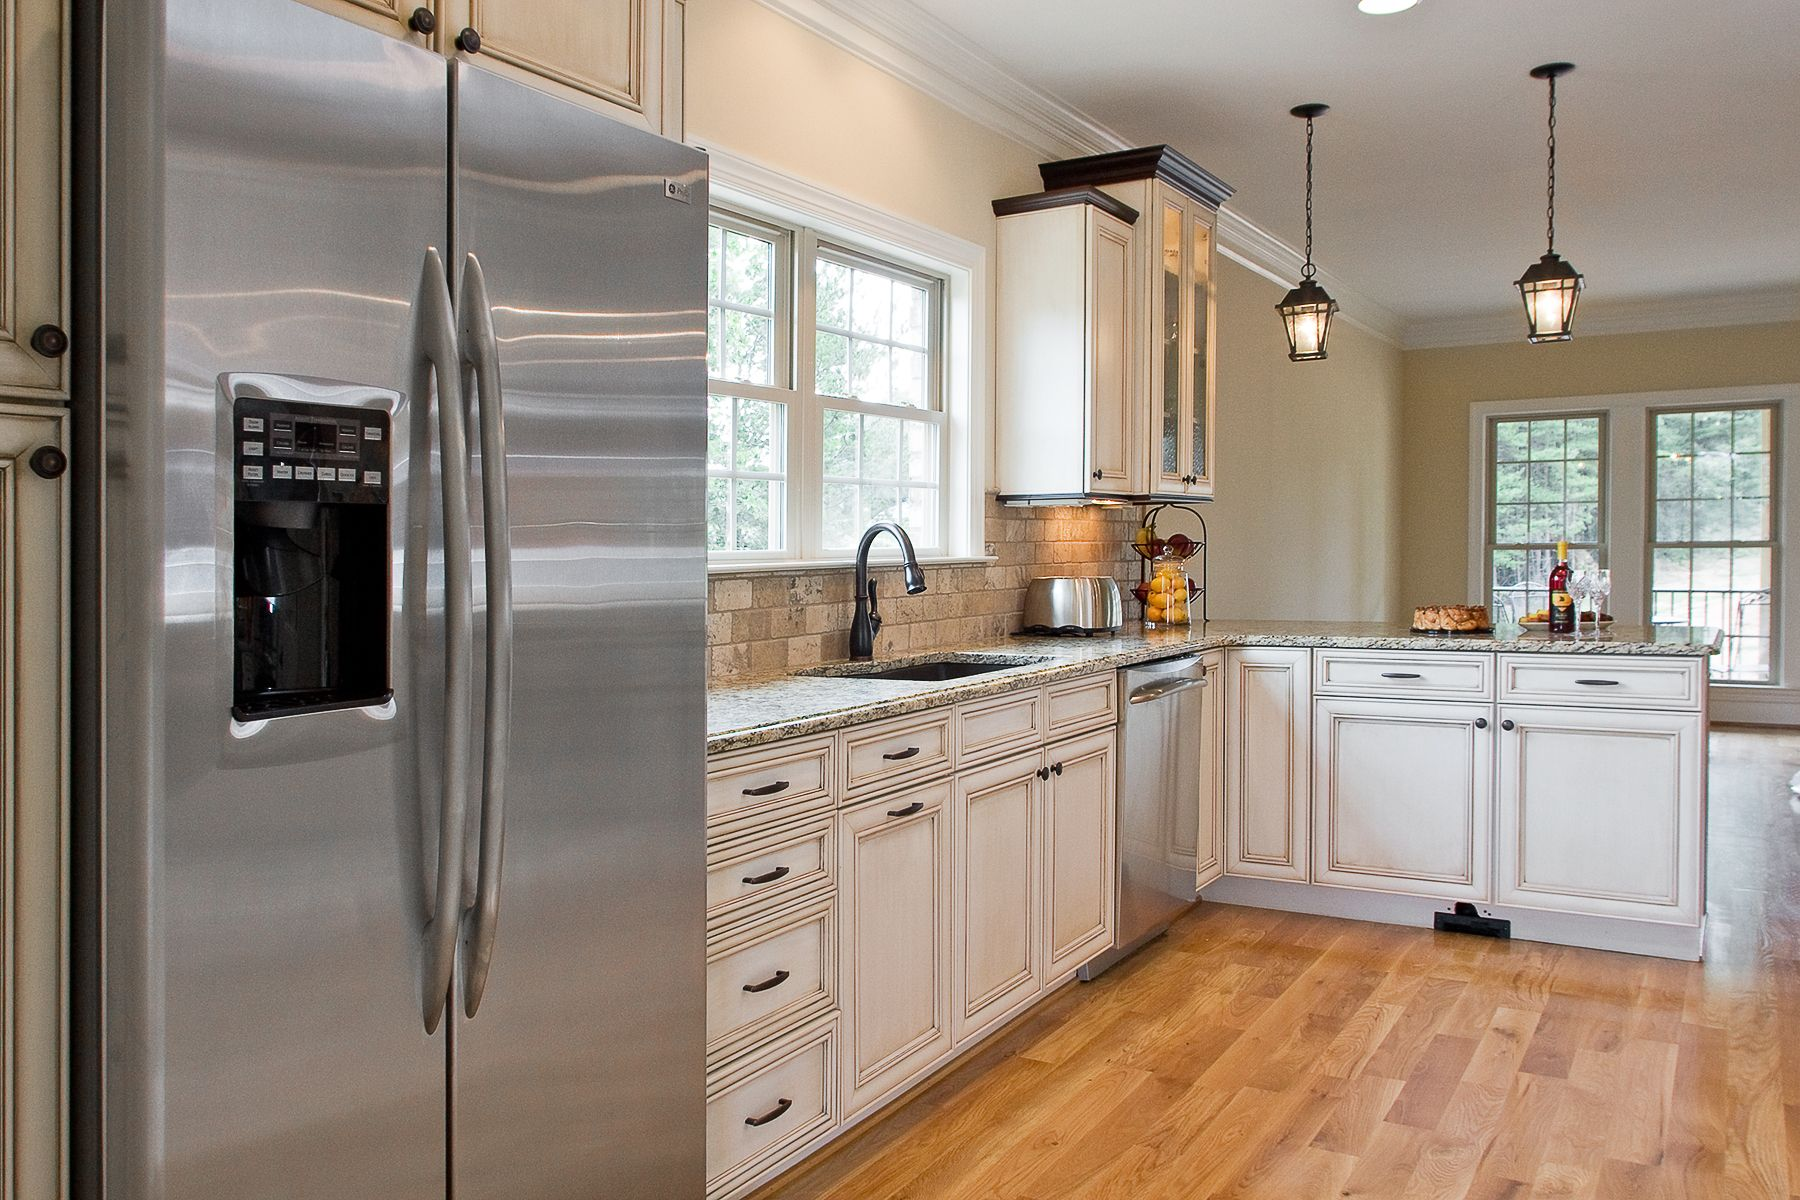 Charmant Kitchen: Best Photos Of White Kitchen Cabis With Stainless Steel Kitchen  Pictures With Stainless Steel Appliances Oak Kitchen With Stainless Steel  ...